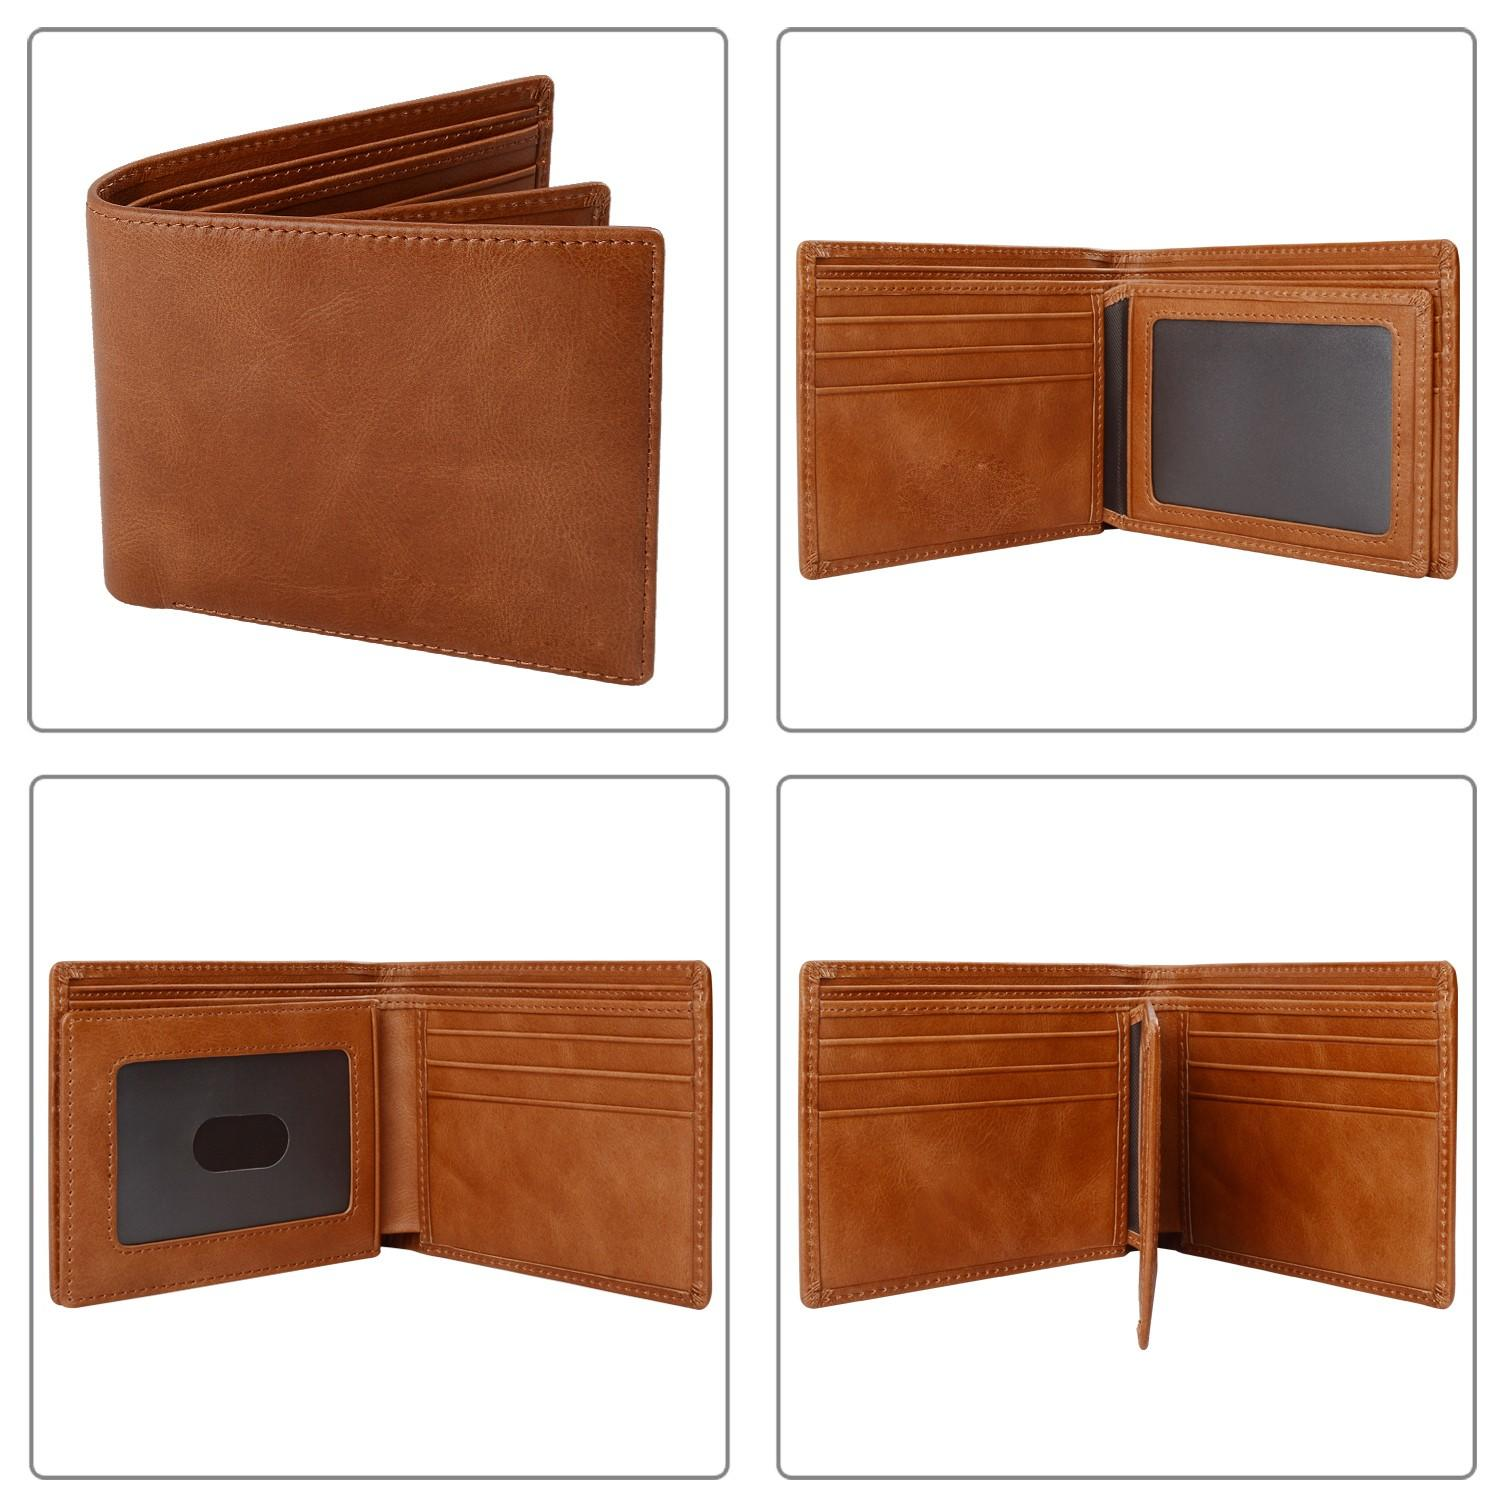 AIVI custom leather wallets for sale for travel